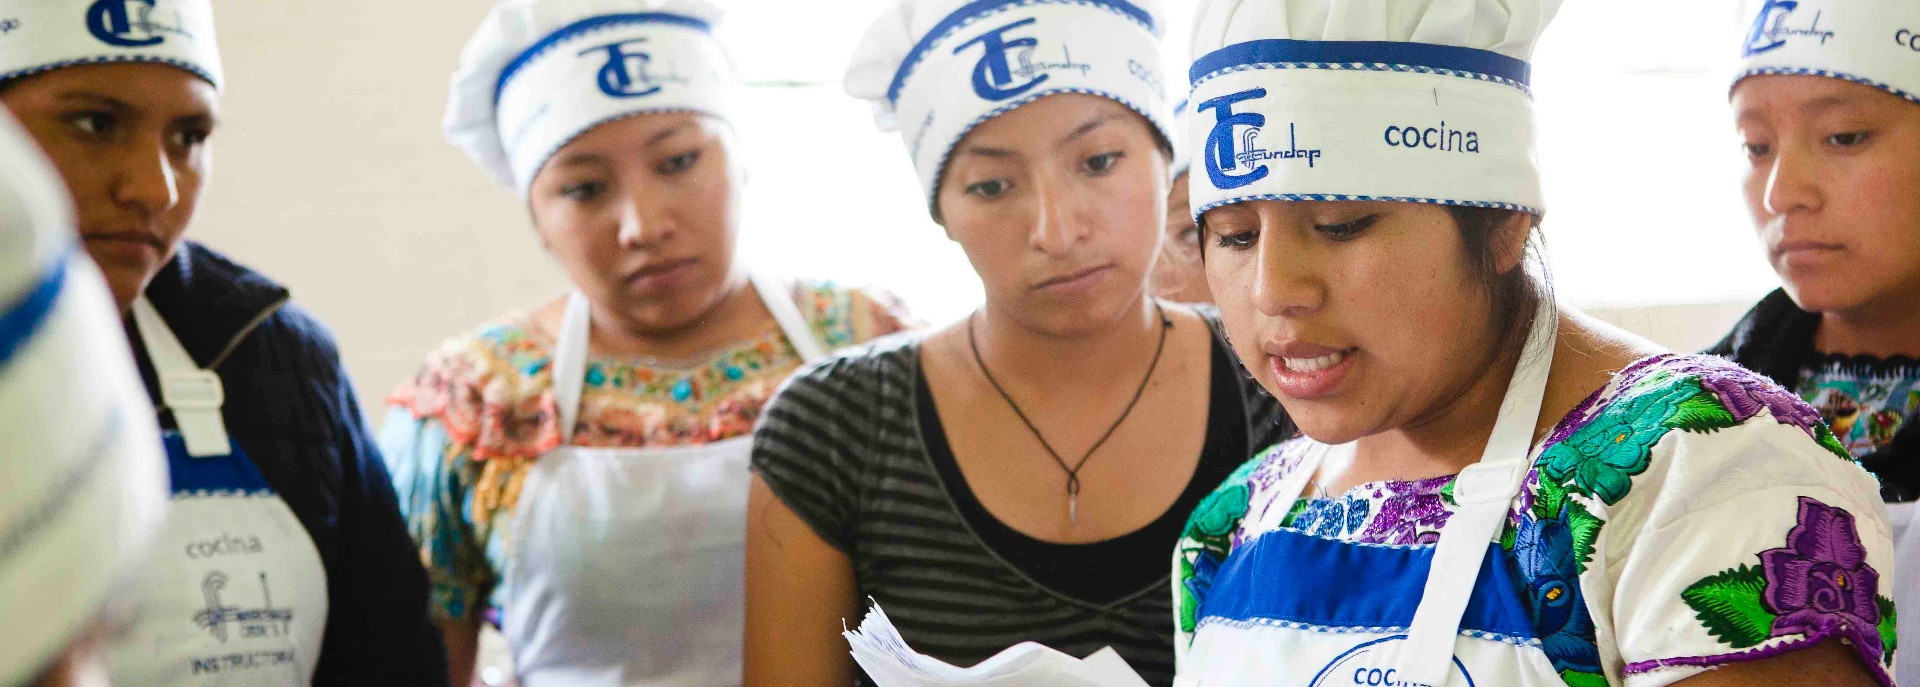 Medicor Foundation: Projekt Kochausbildung in Guatemala. Copyright: Swisscontact